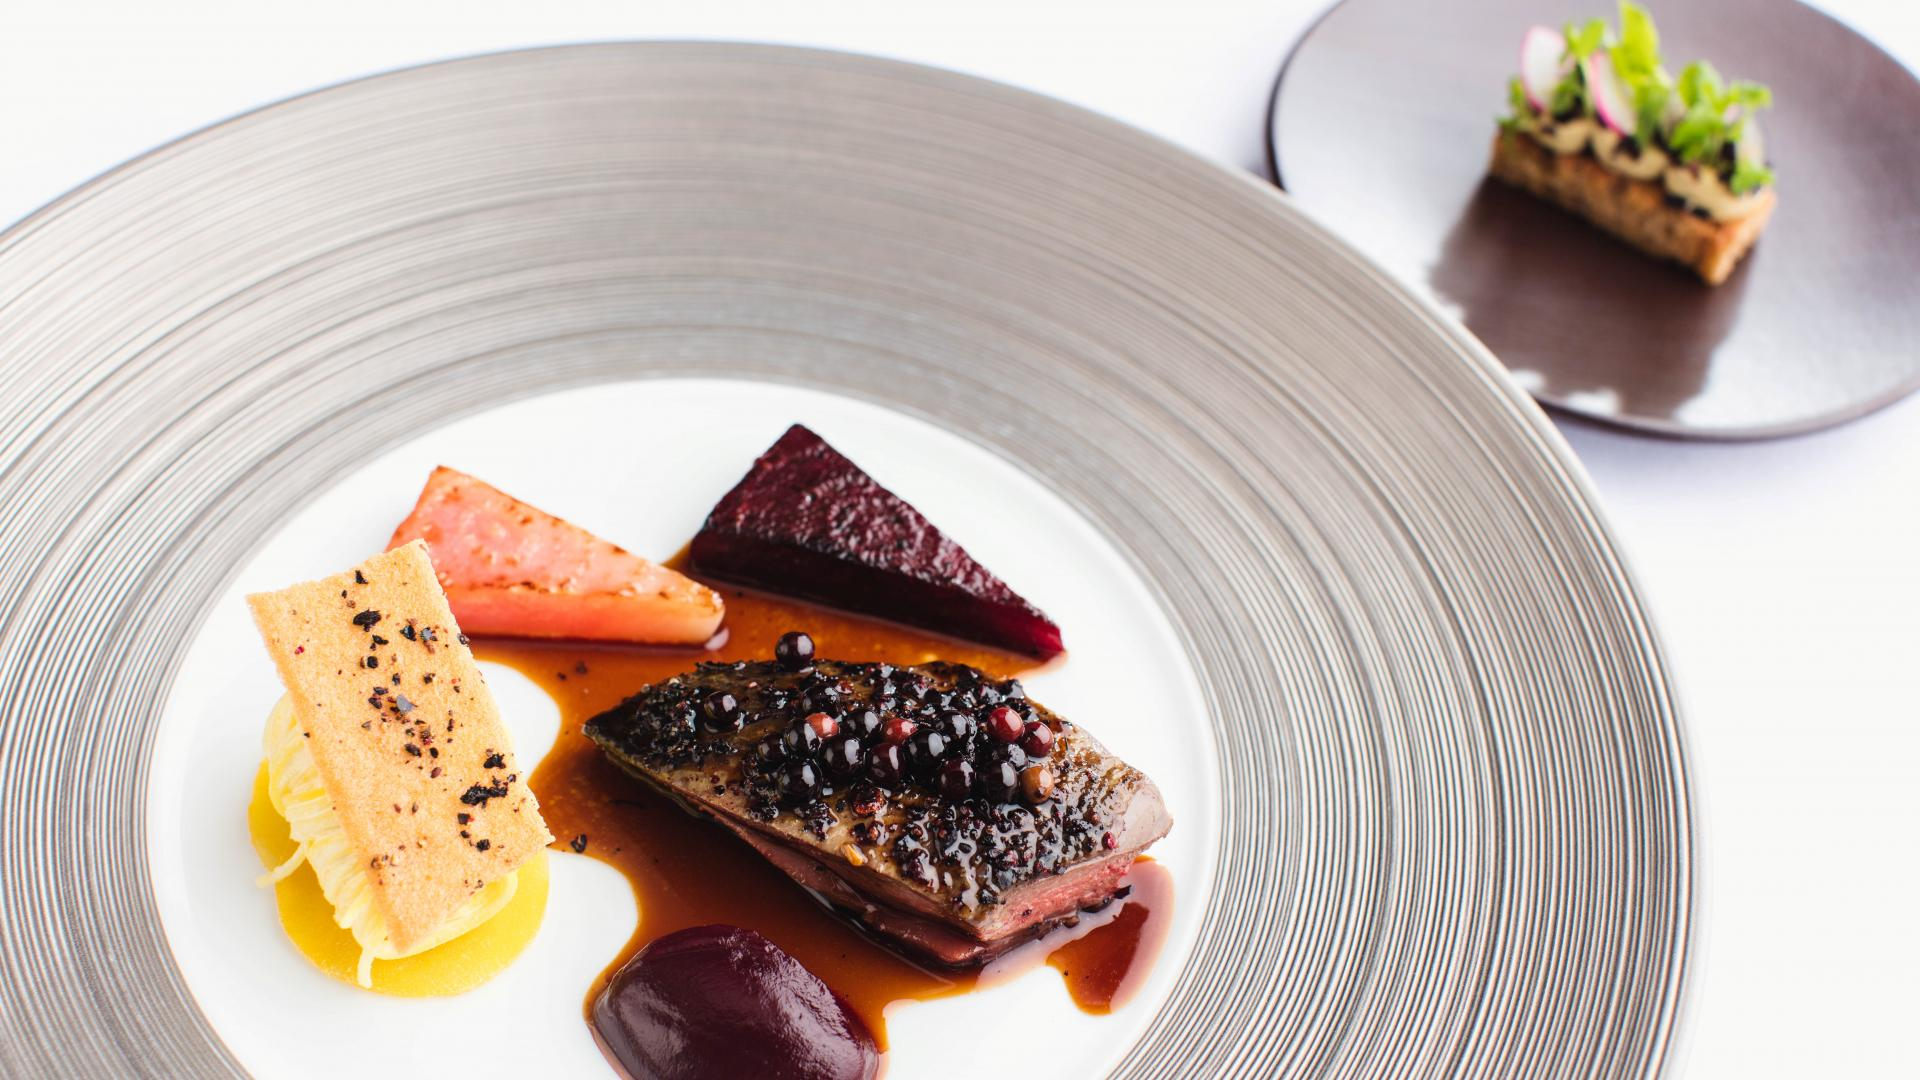 Things to do in Jersey: a dish at Bohemia restaurant